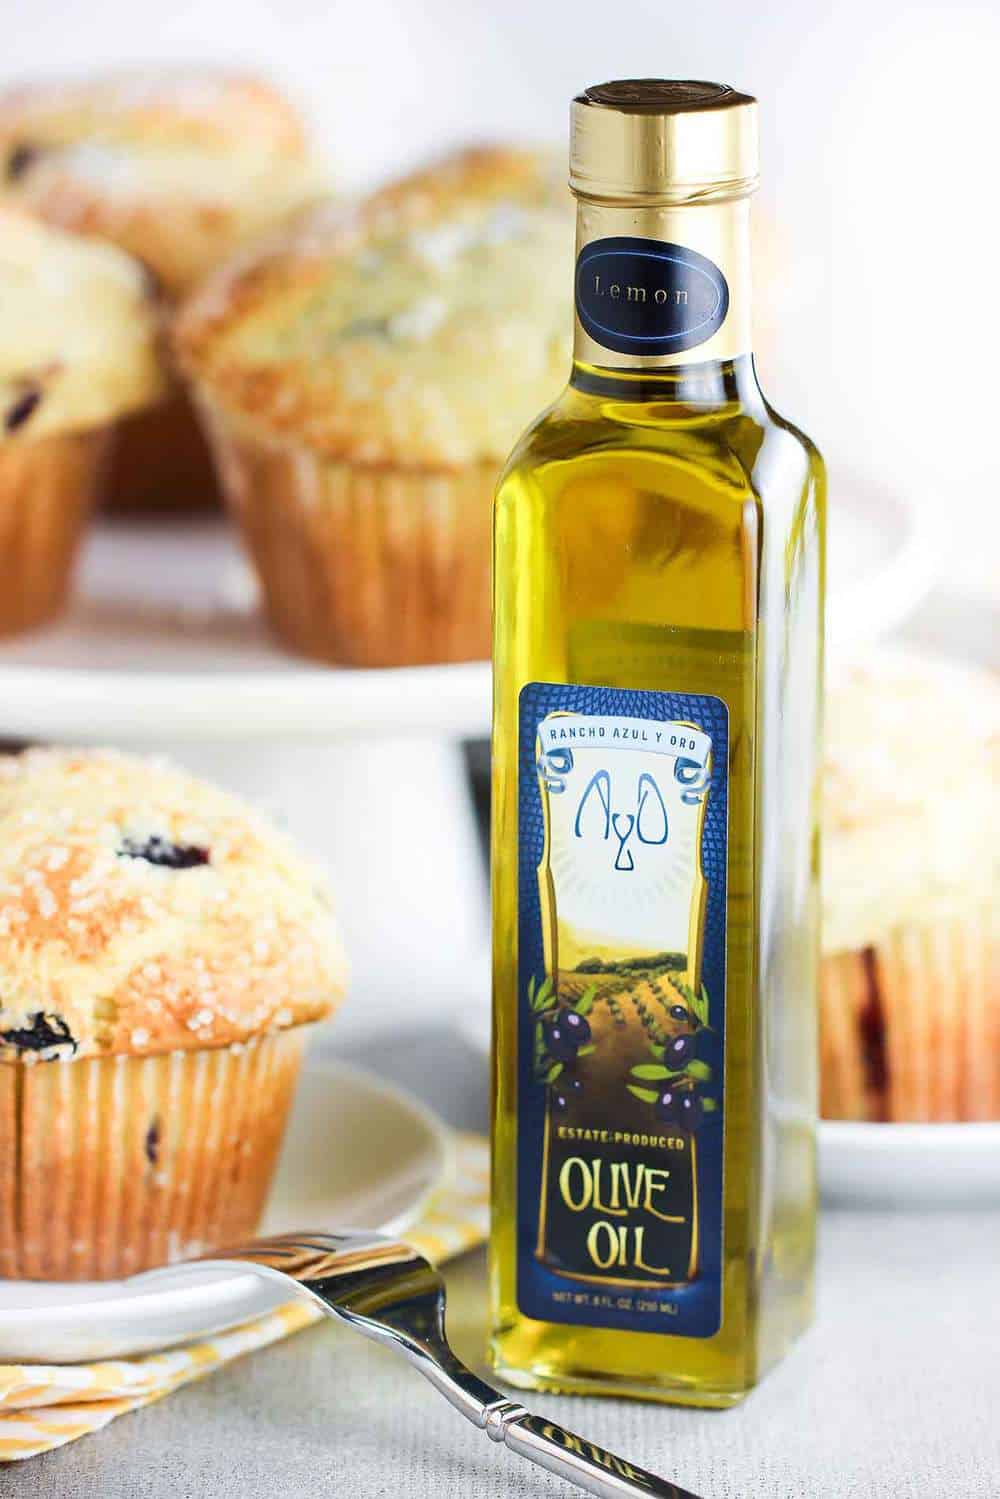 Lemon Olive Oil and Blueberry Jumbo Muffins recipe